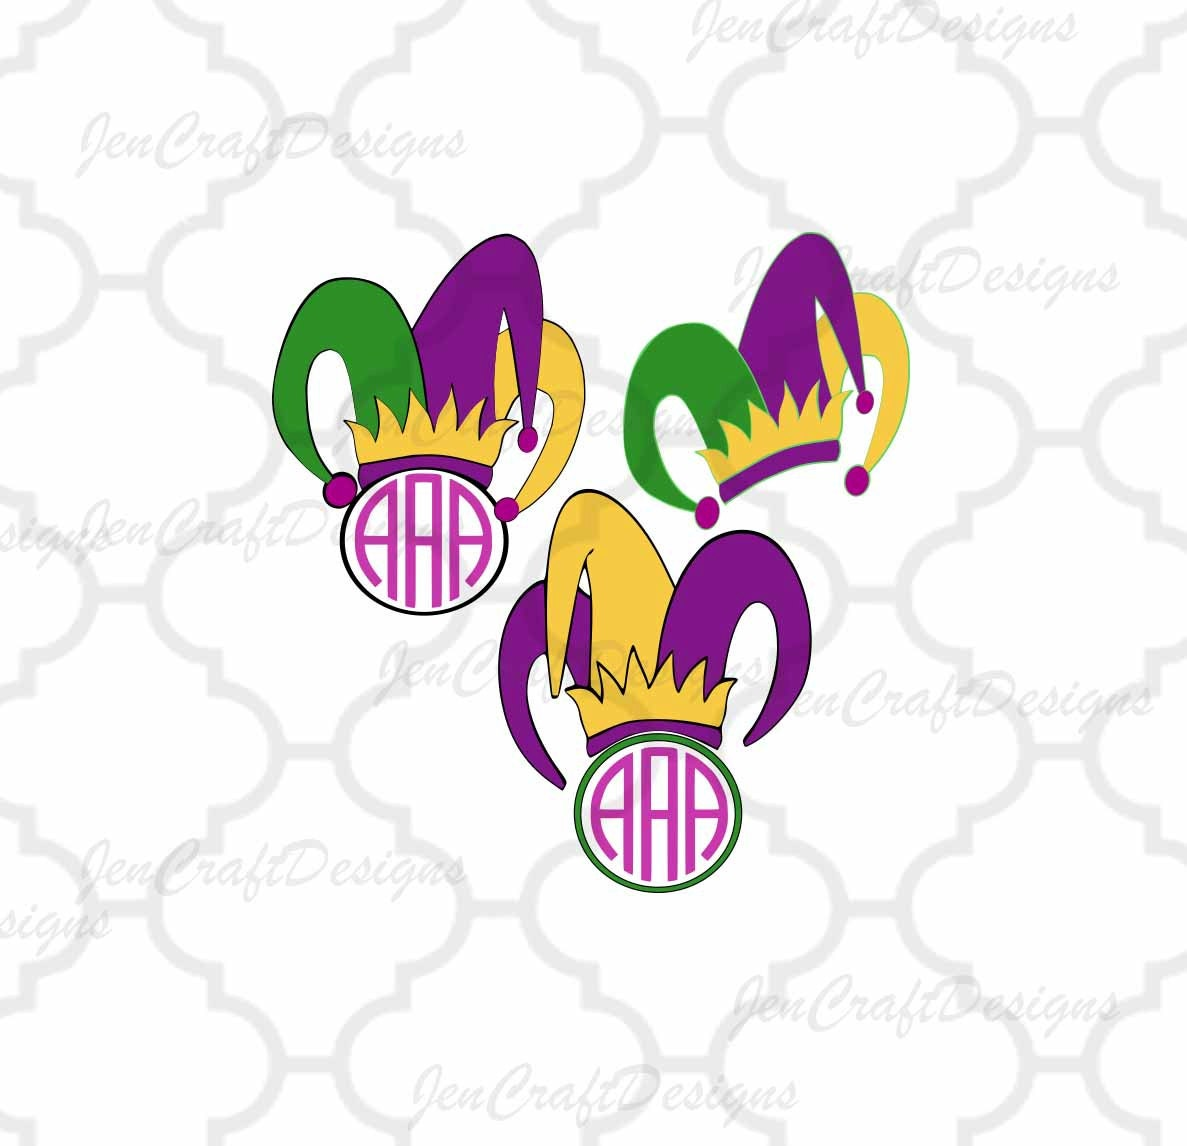 2019 year lifestyle- Gras Mardi logo png pictures